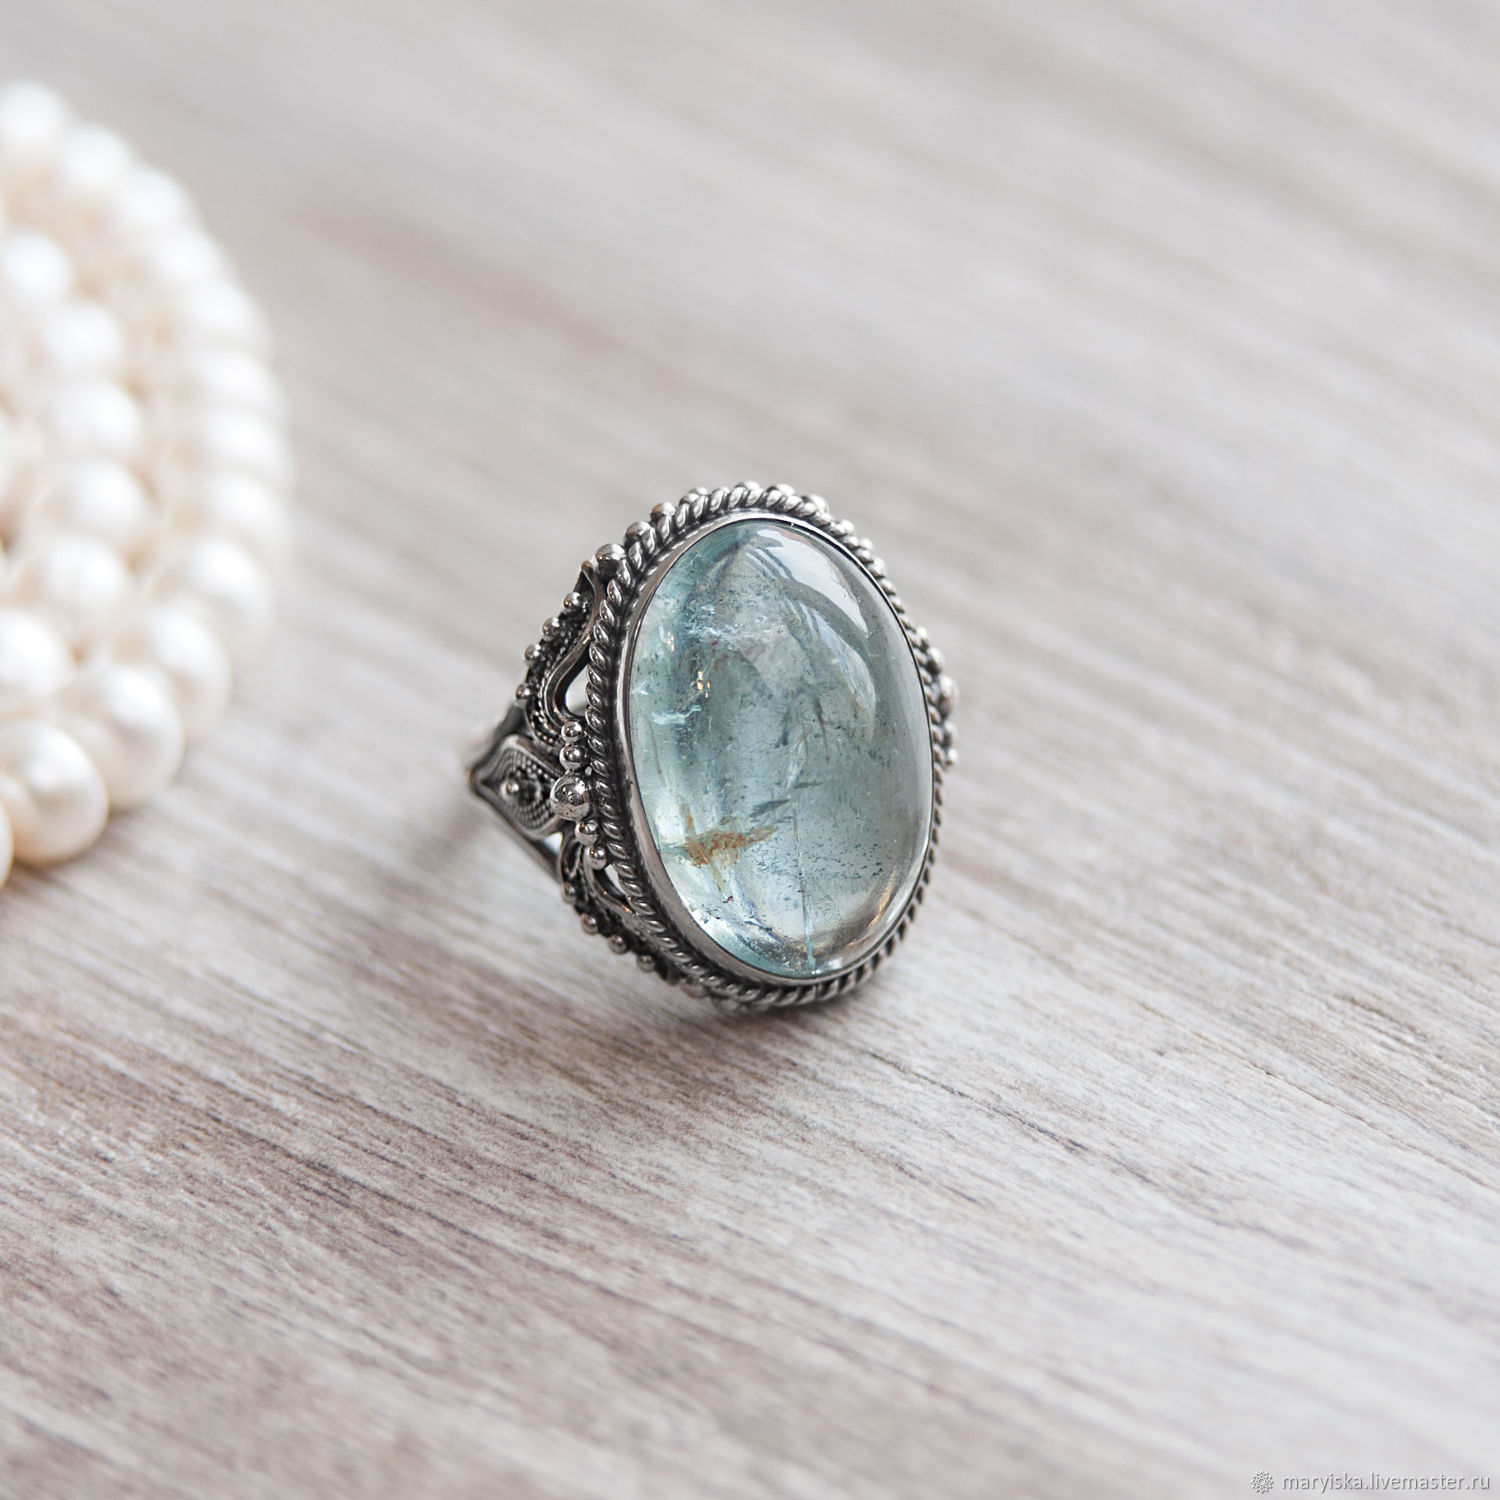 aquamarine and decorative jewellery auction lot csm auktionshaus lempertz ring gold arts en catalogues a